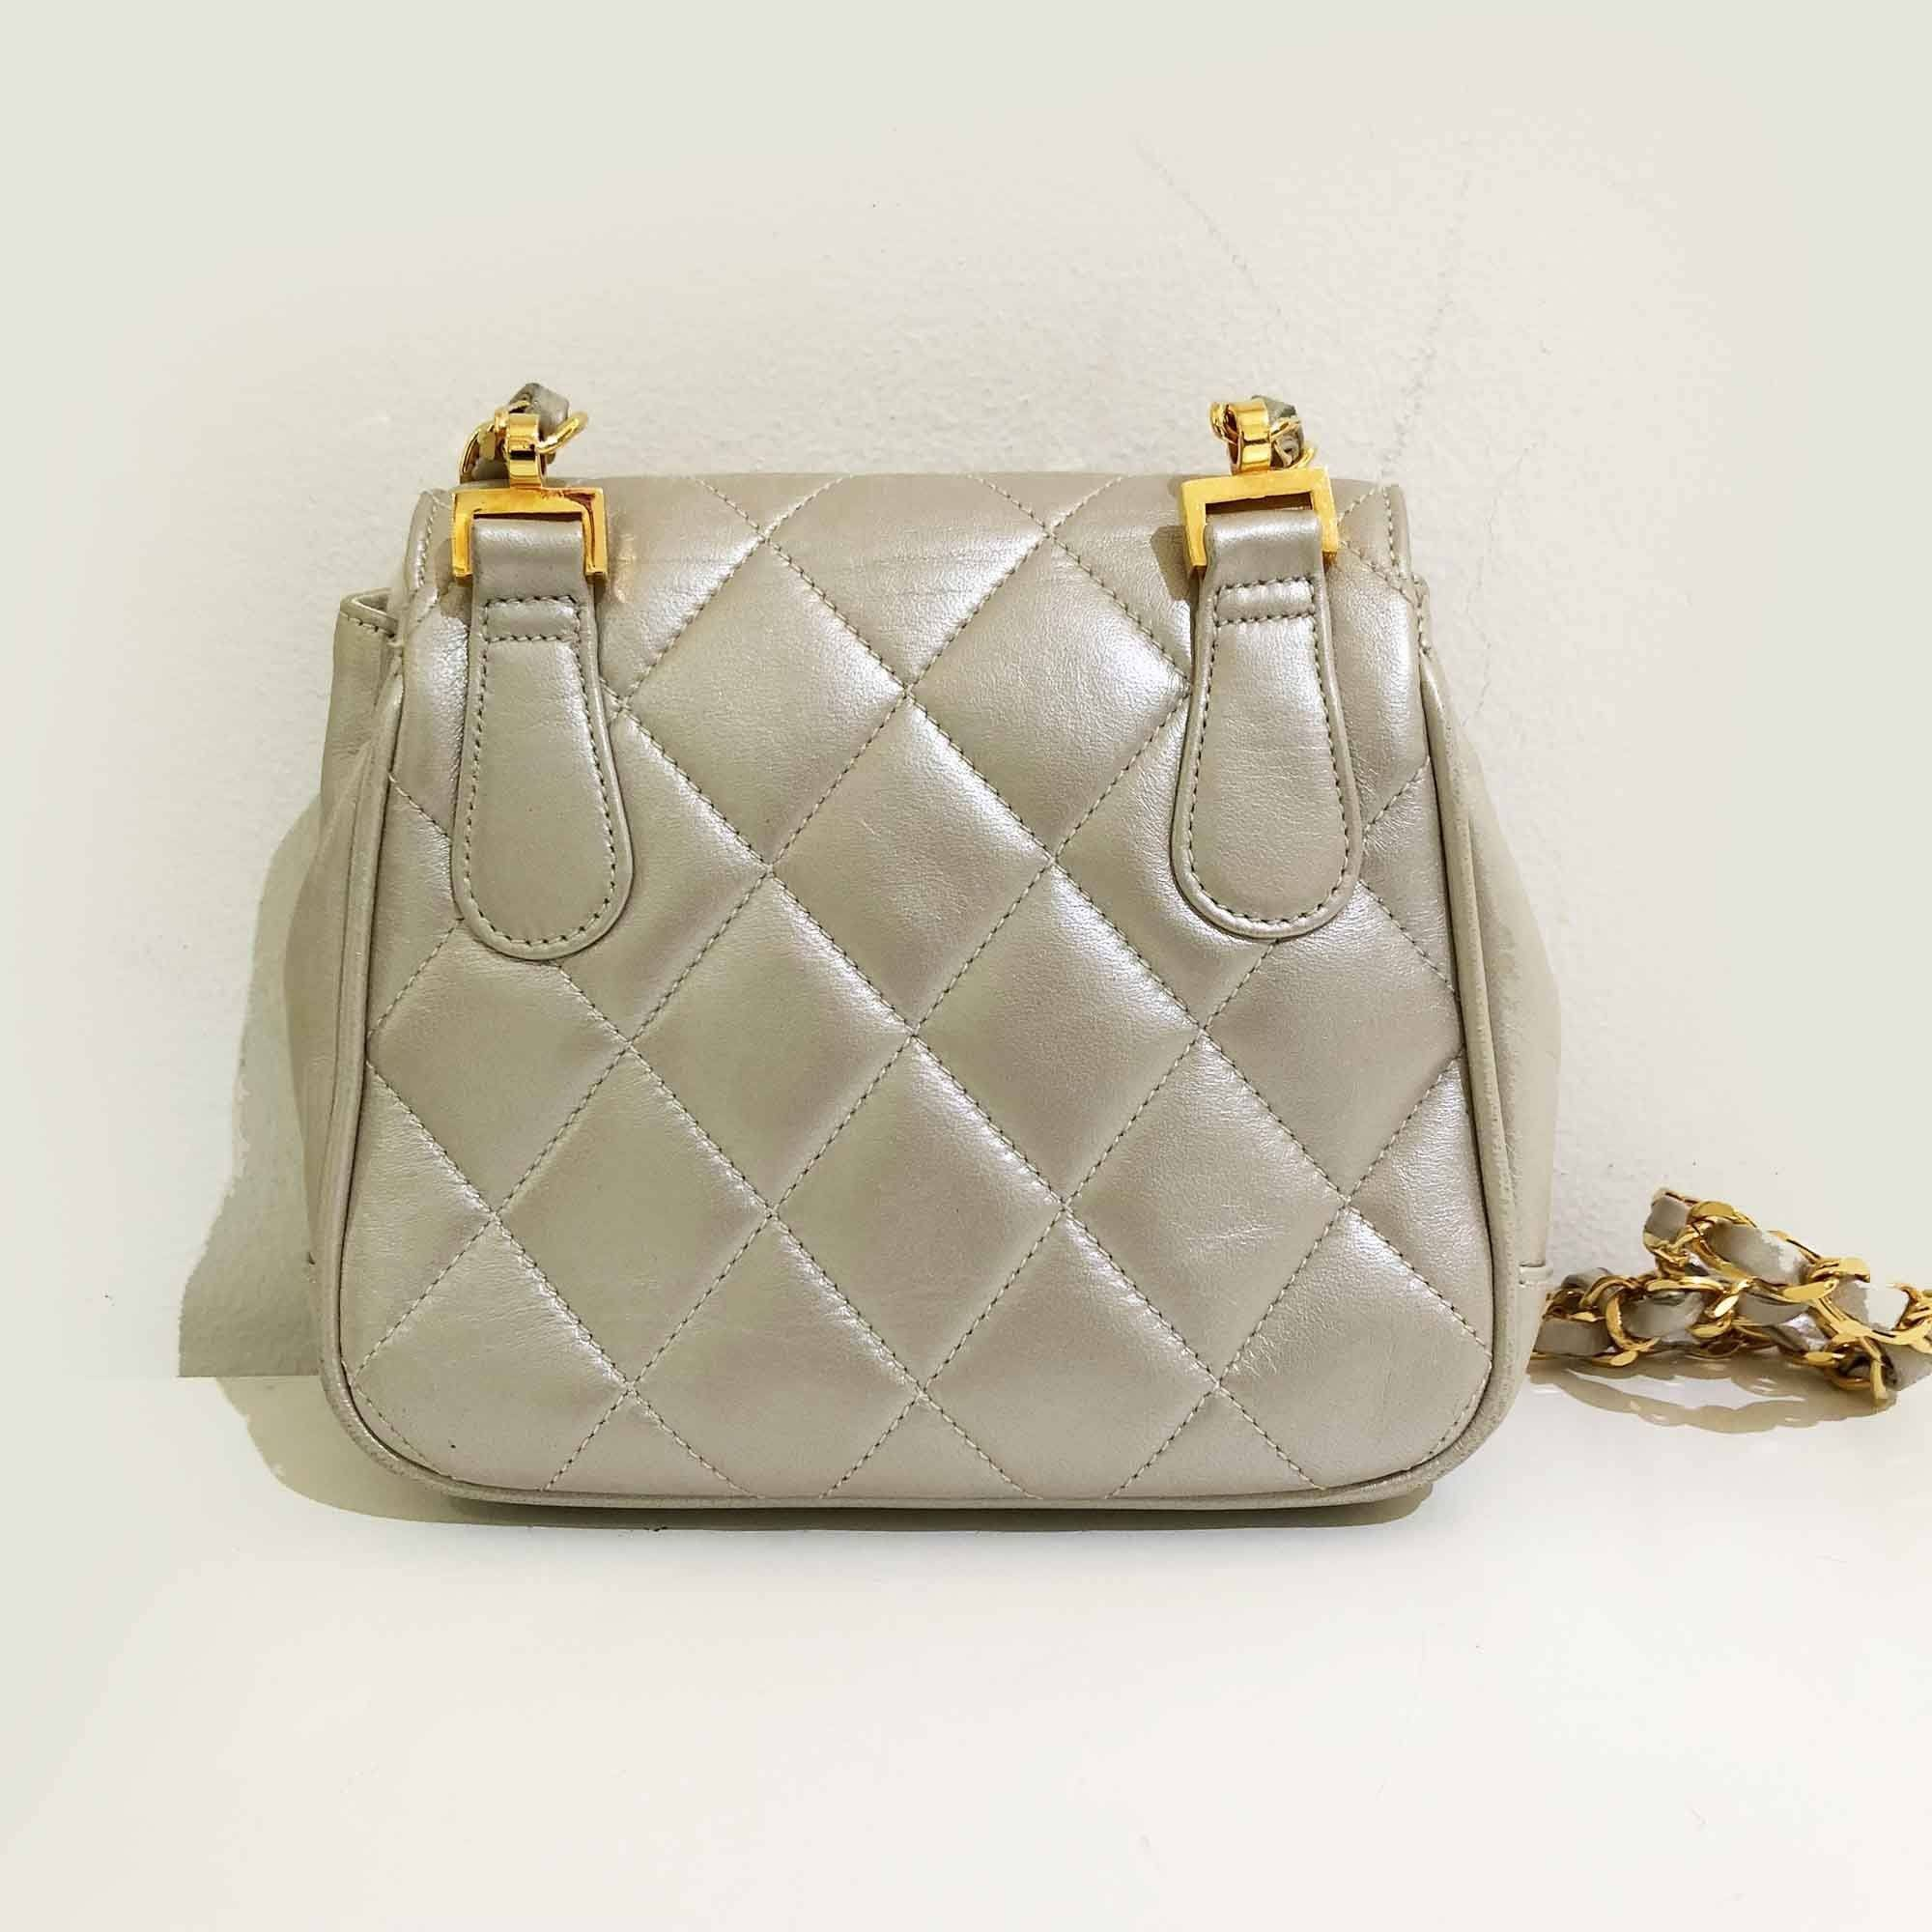 Chanel Vintage Quilted Pearl Mini Crossbody Bag